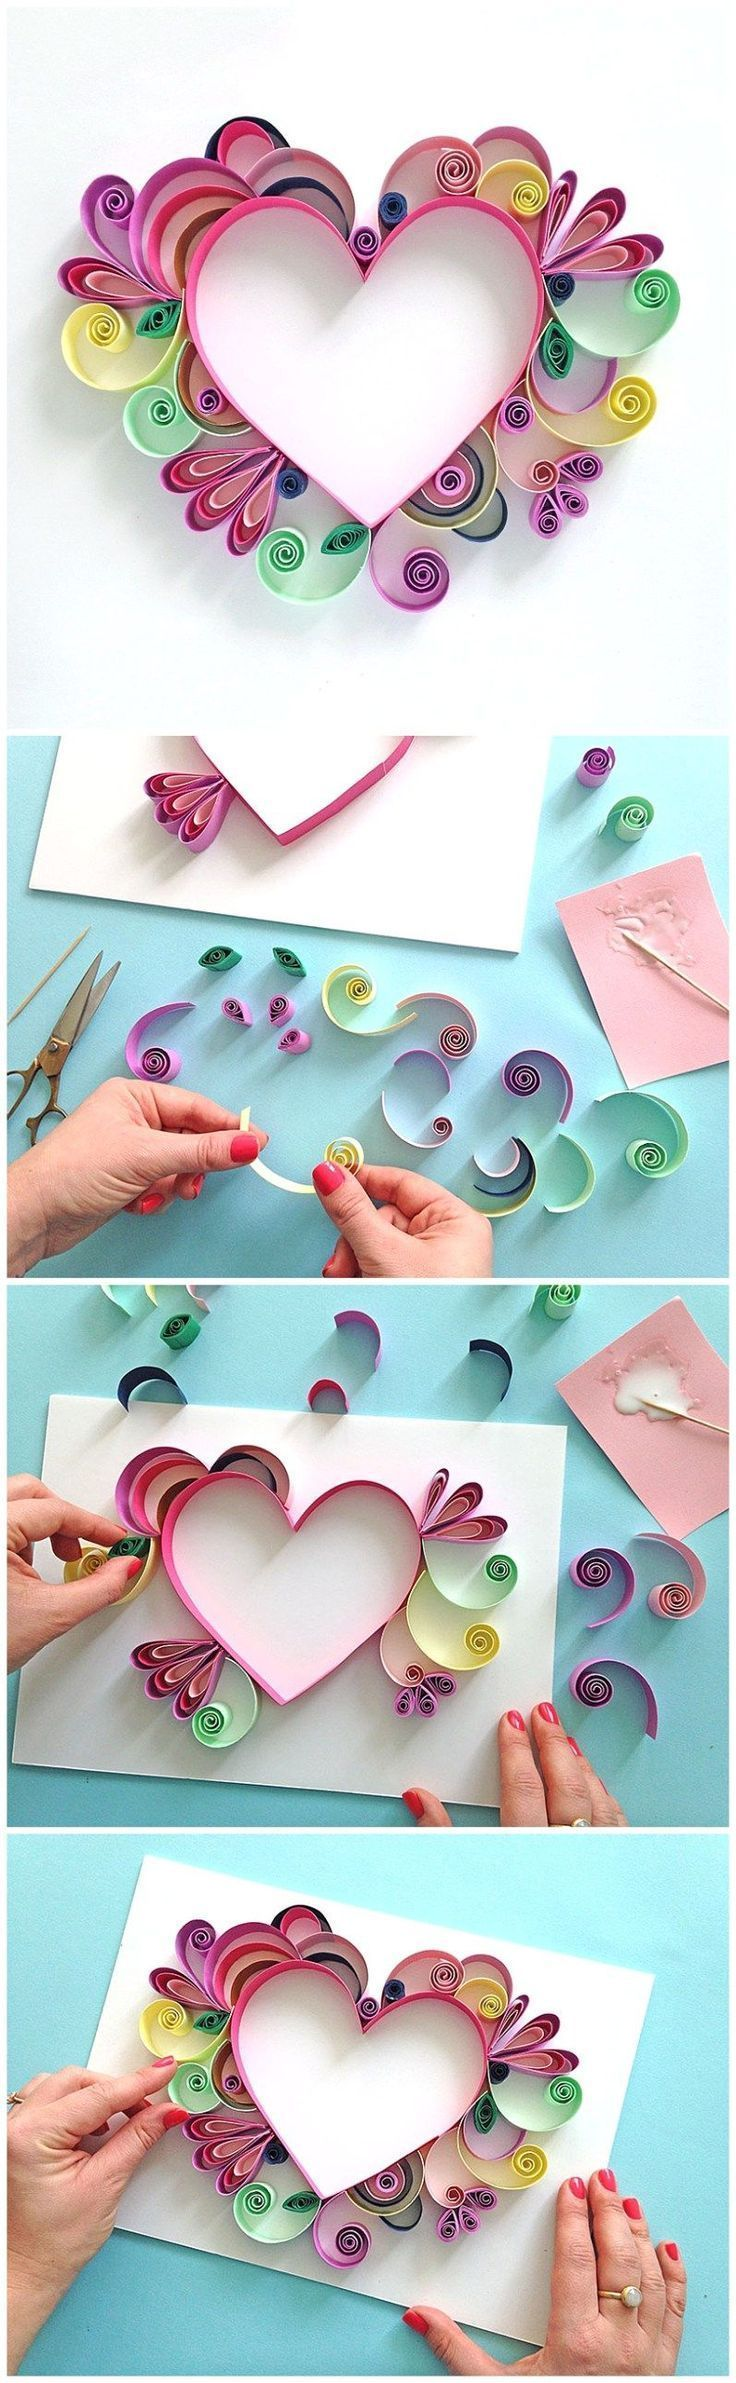 The best do it yourself gifts fun clever and unique diy craft the best do it yourself gifts fun clever and unique diy craft projects and ideas for christmas birthdays thank you or any occasion dreaming solutioingenieria Choice Image